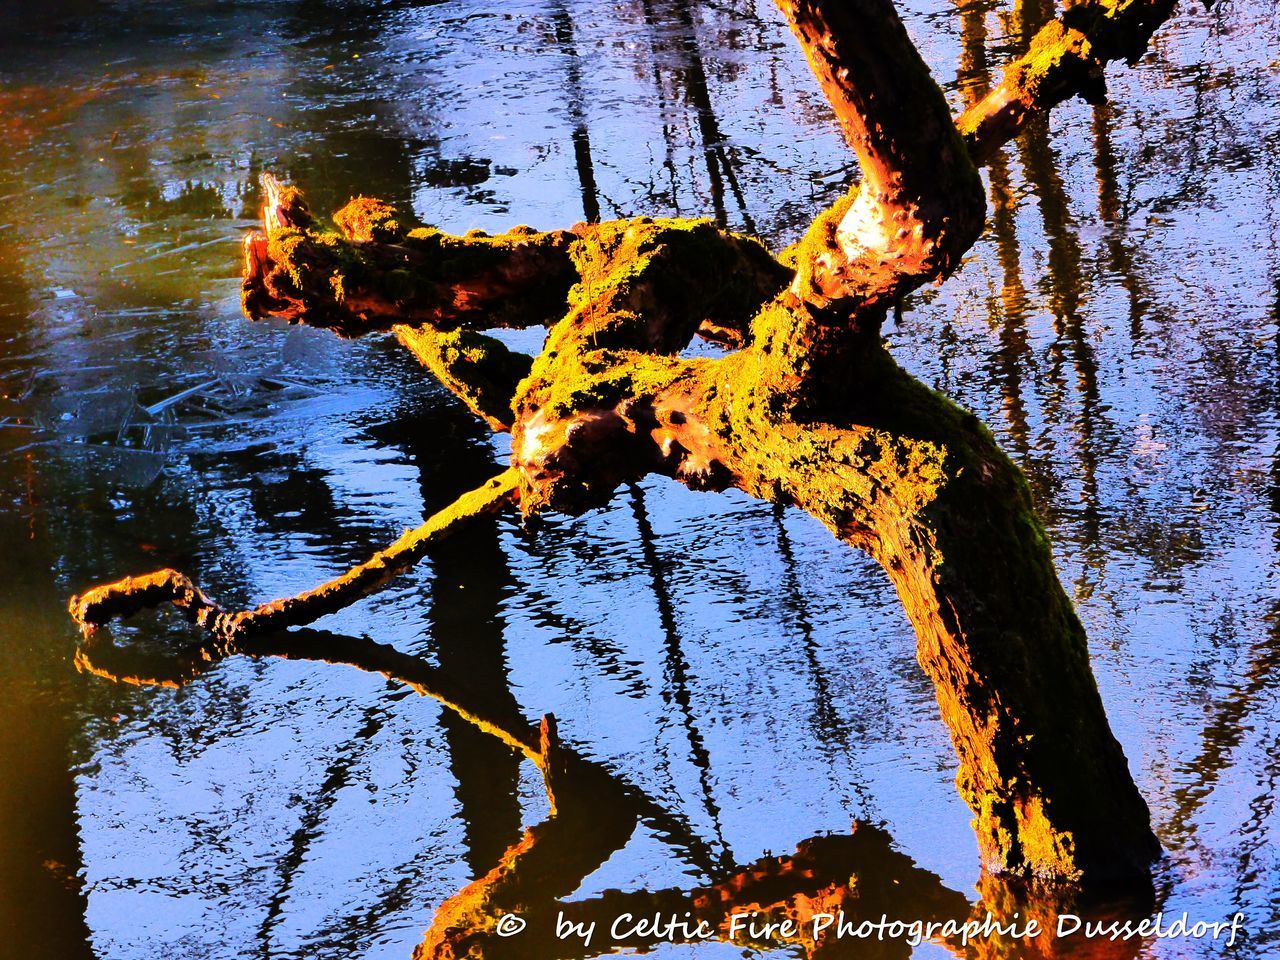 tree, no people, water, day, nature, outdoors, lake, branch, close-up, beauty in nature